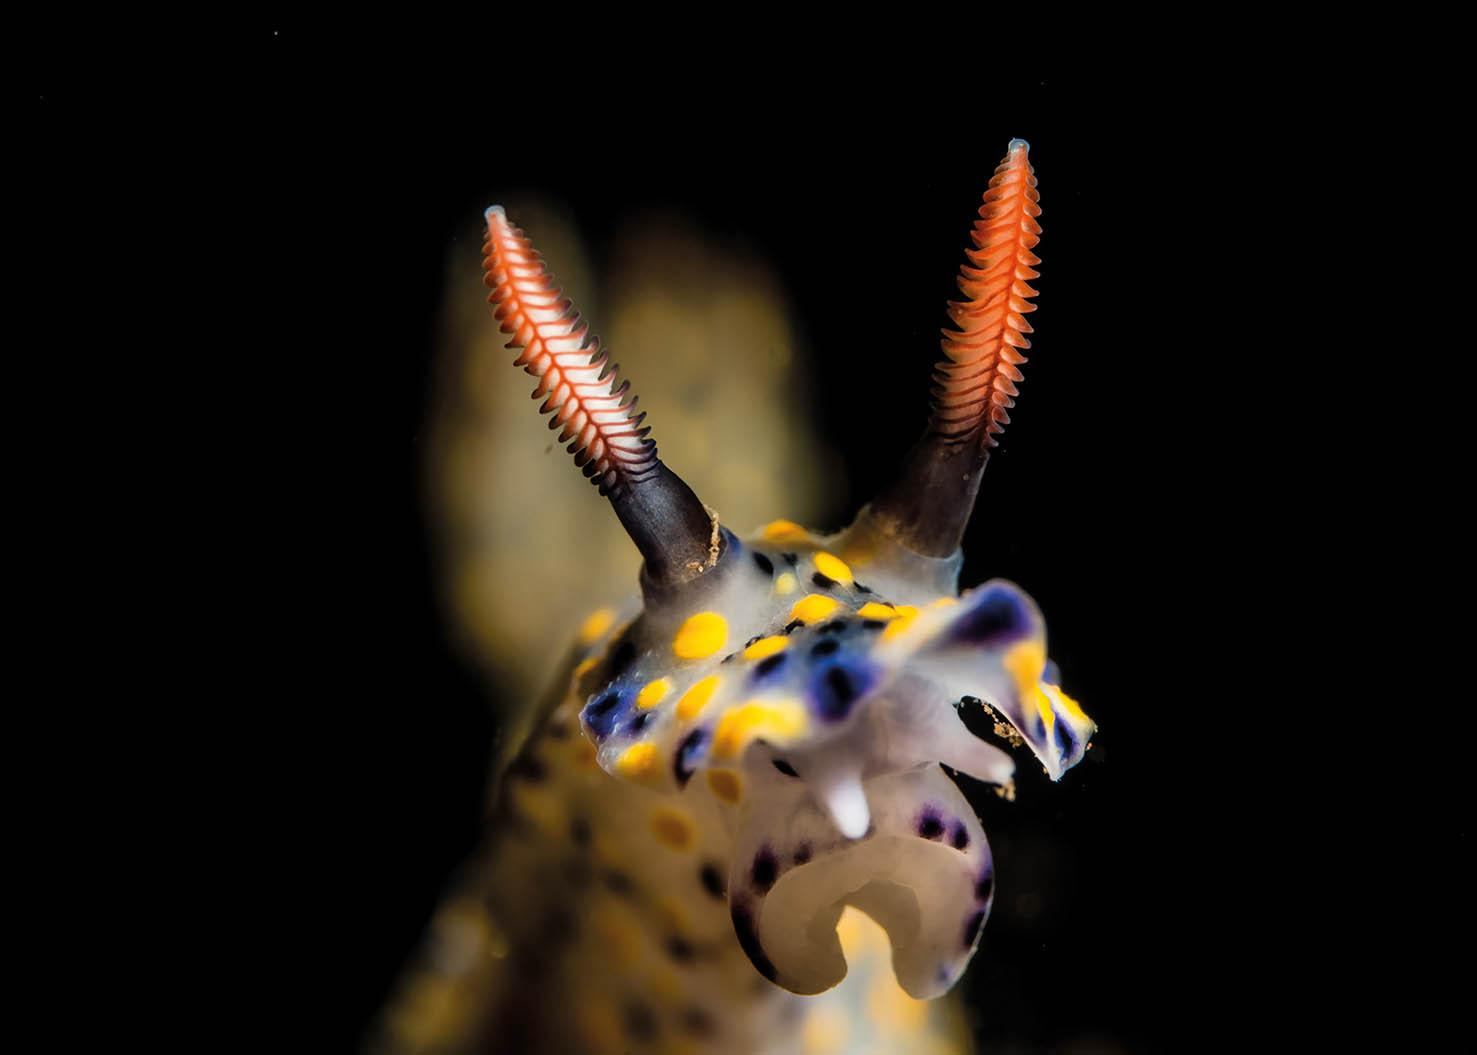 Head On Nudibranch - Photographs by Paul Duxfield